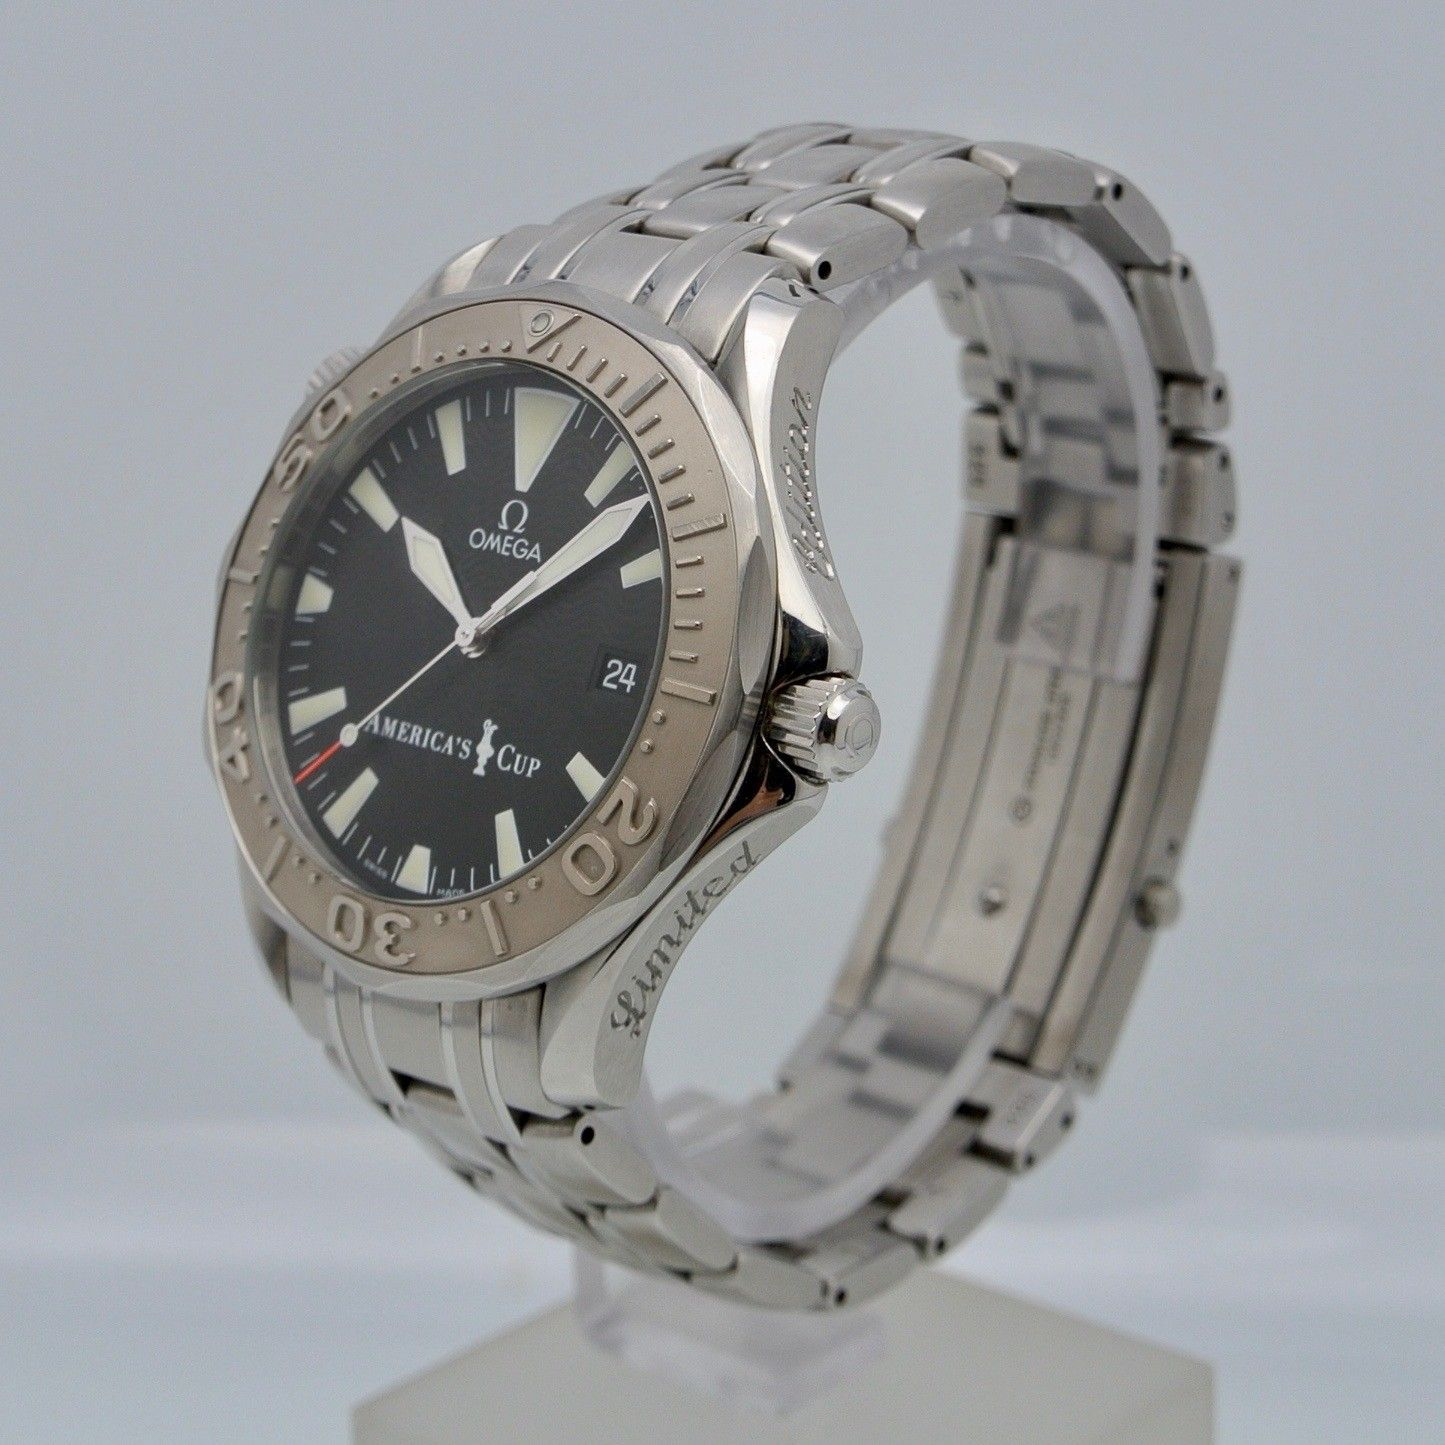 Omega Seamaster AMERICA'S CUP' 2001 Limited Edition